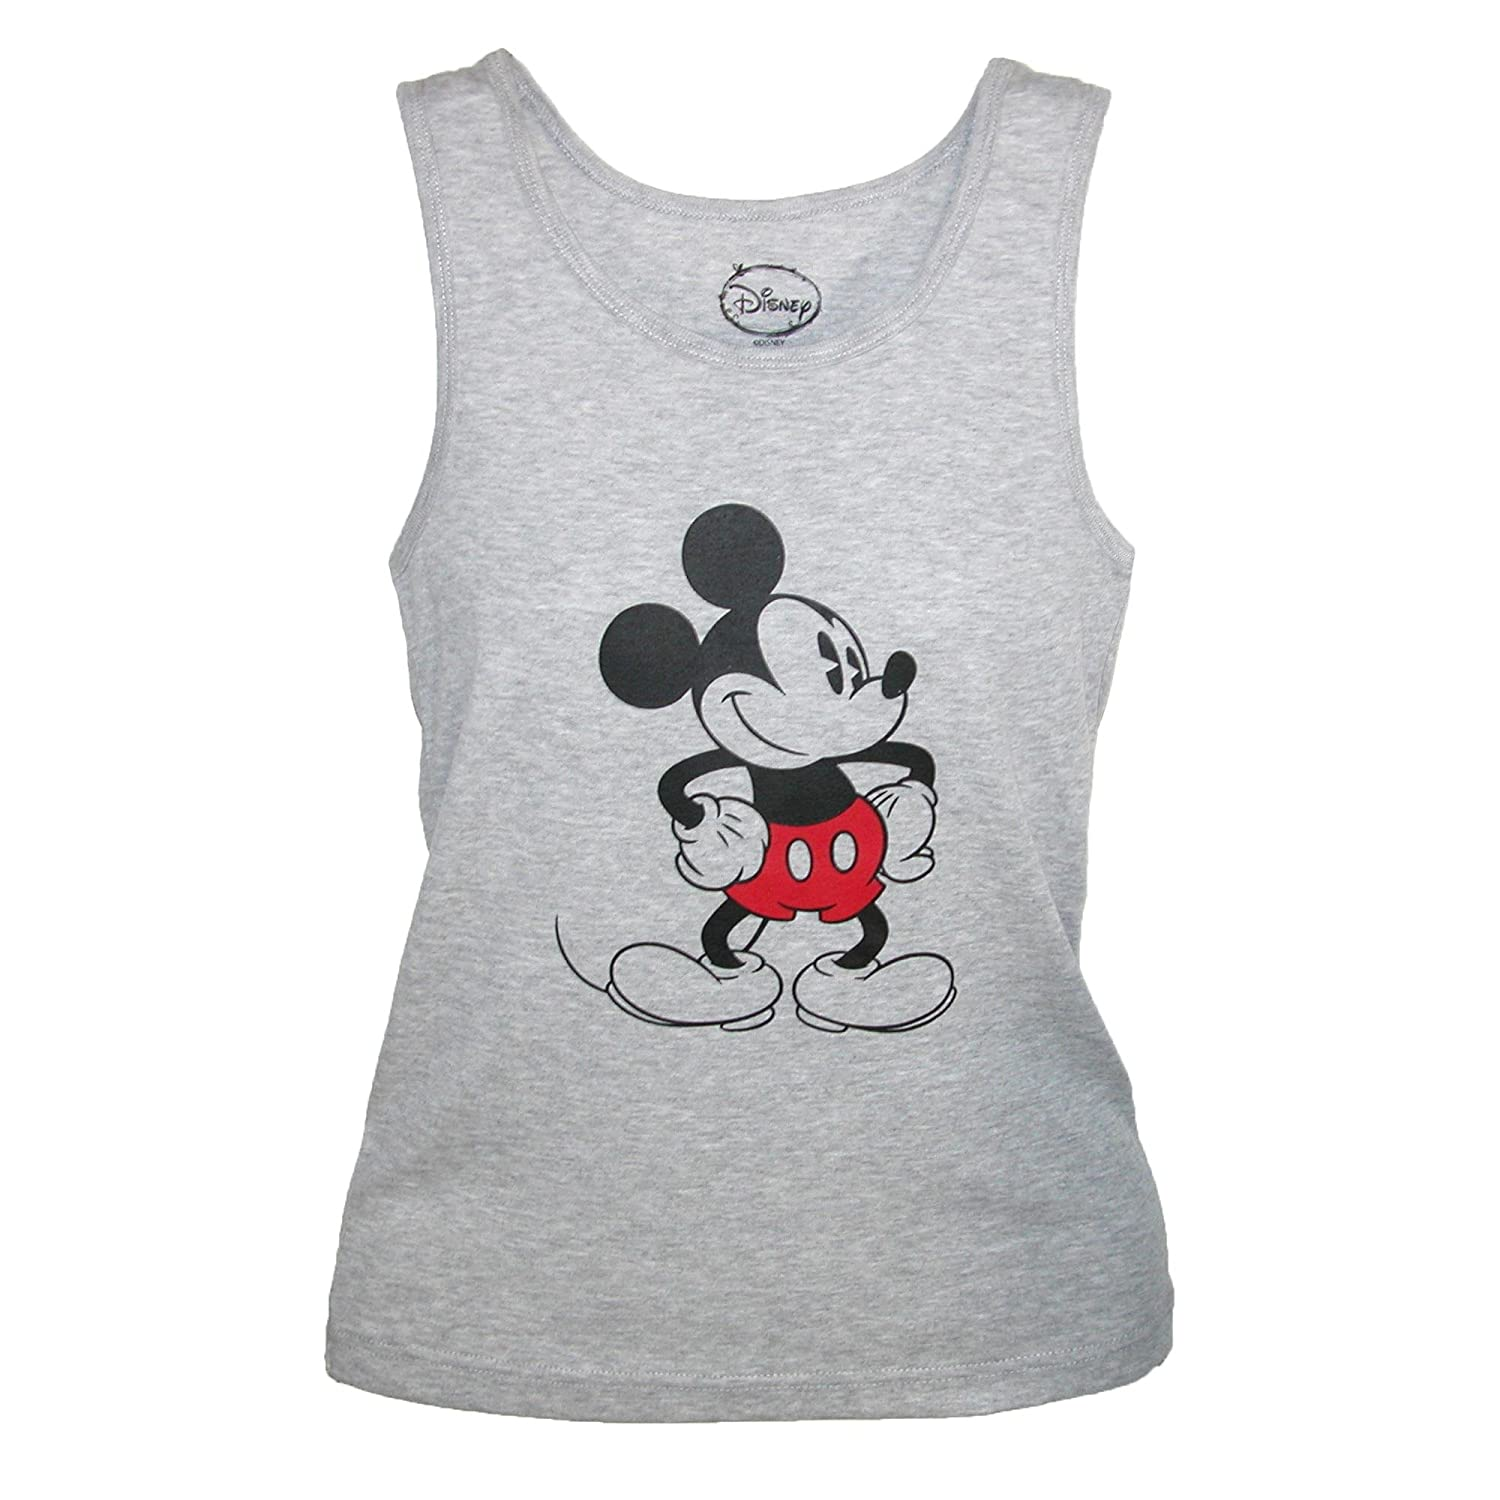 CTM Mickey Mouse Tank Top, Large, Grey JL-JT2901-GRY-L